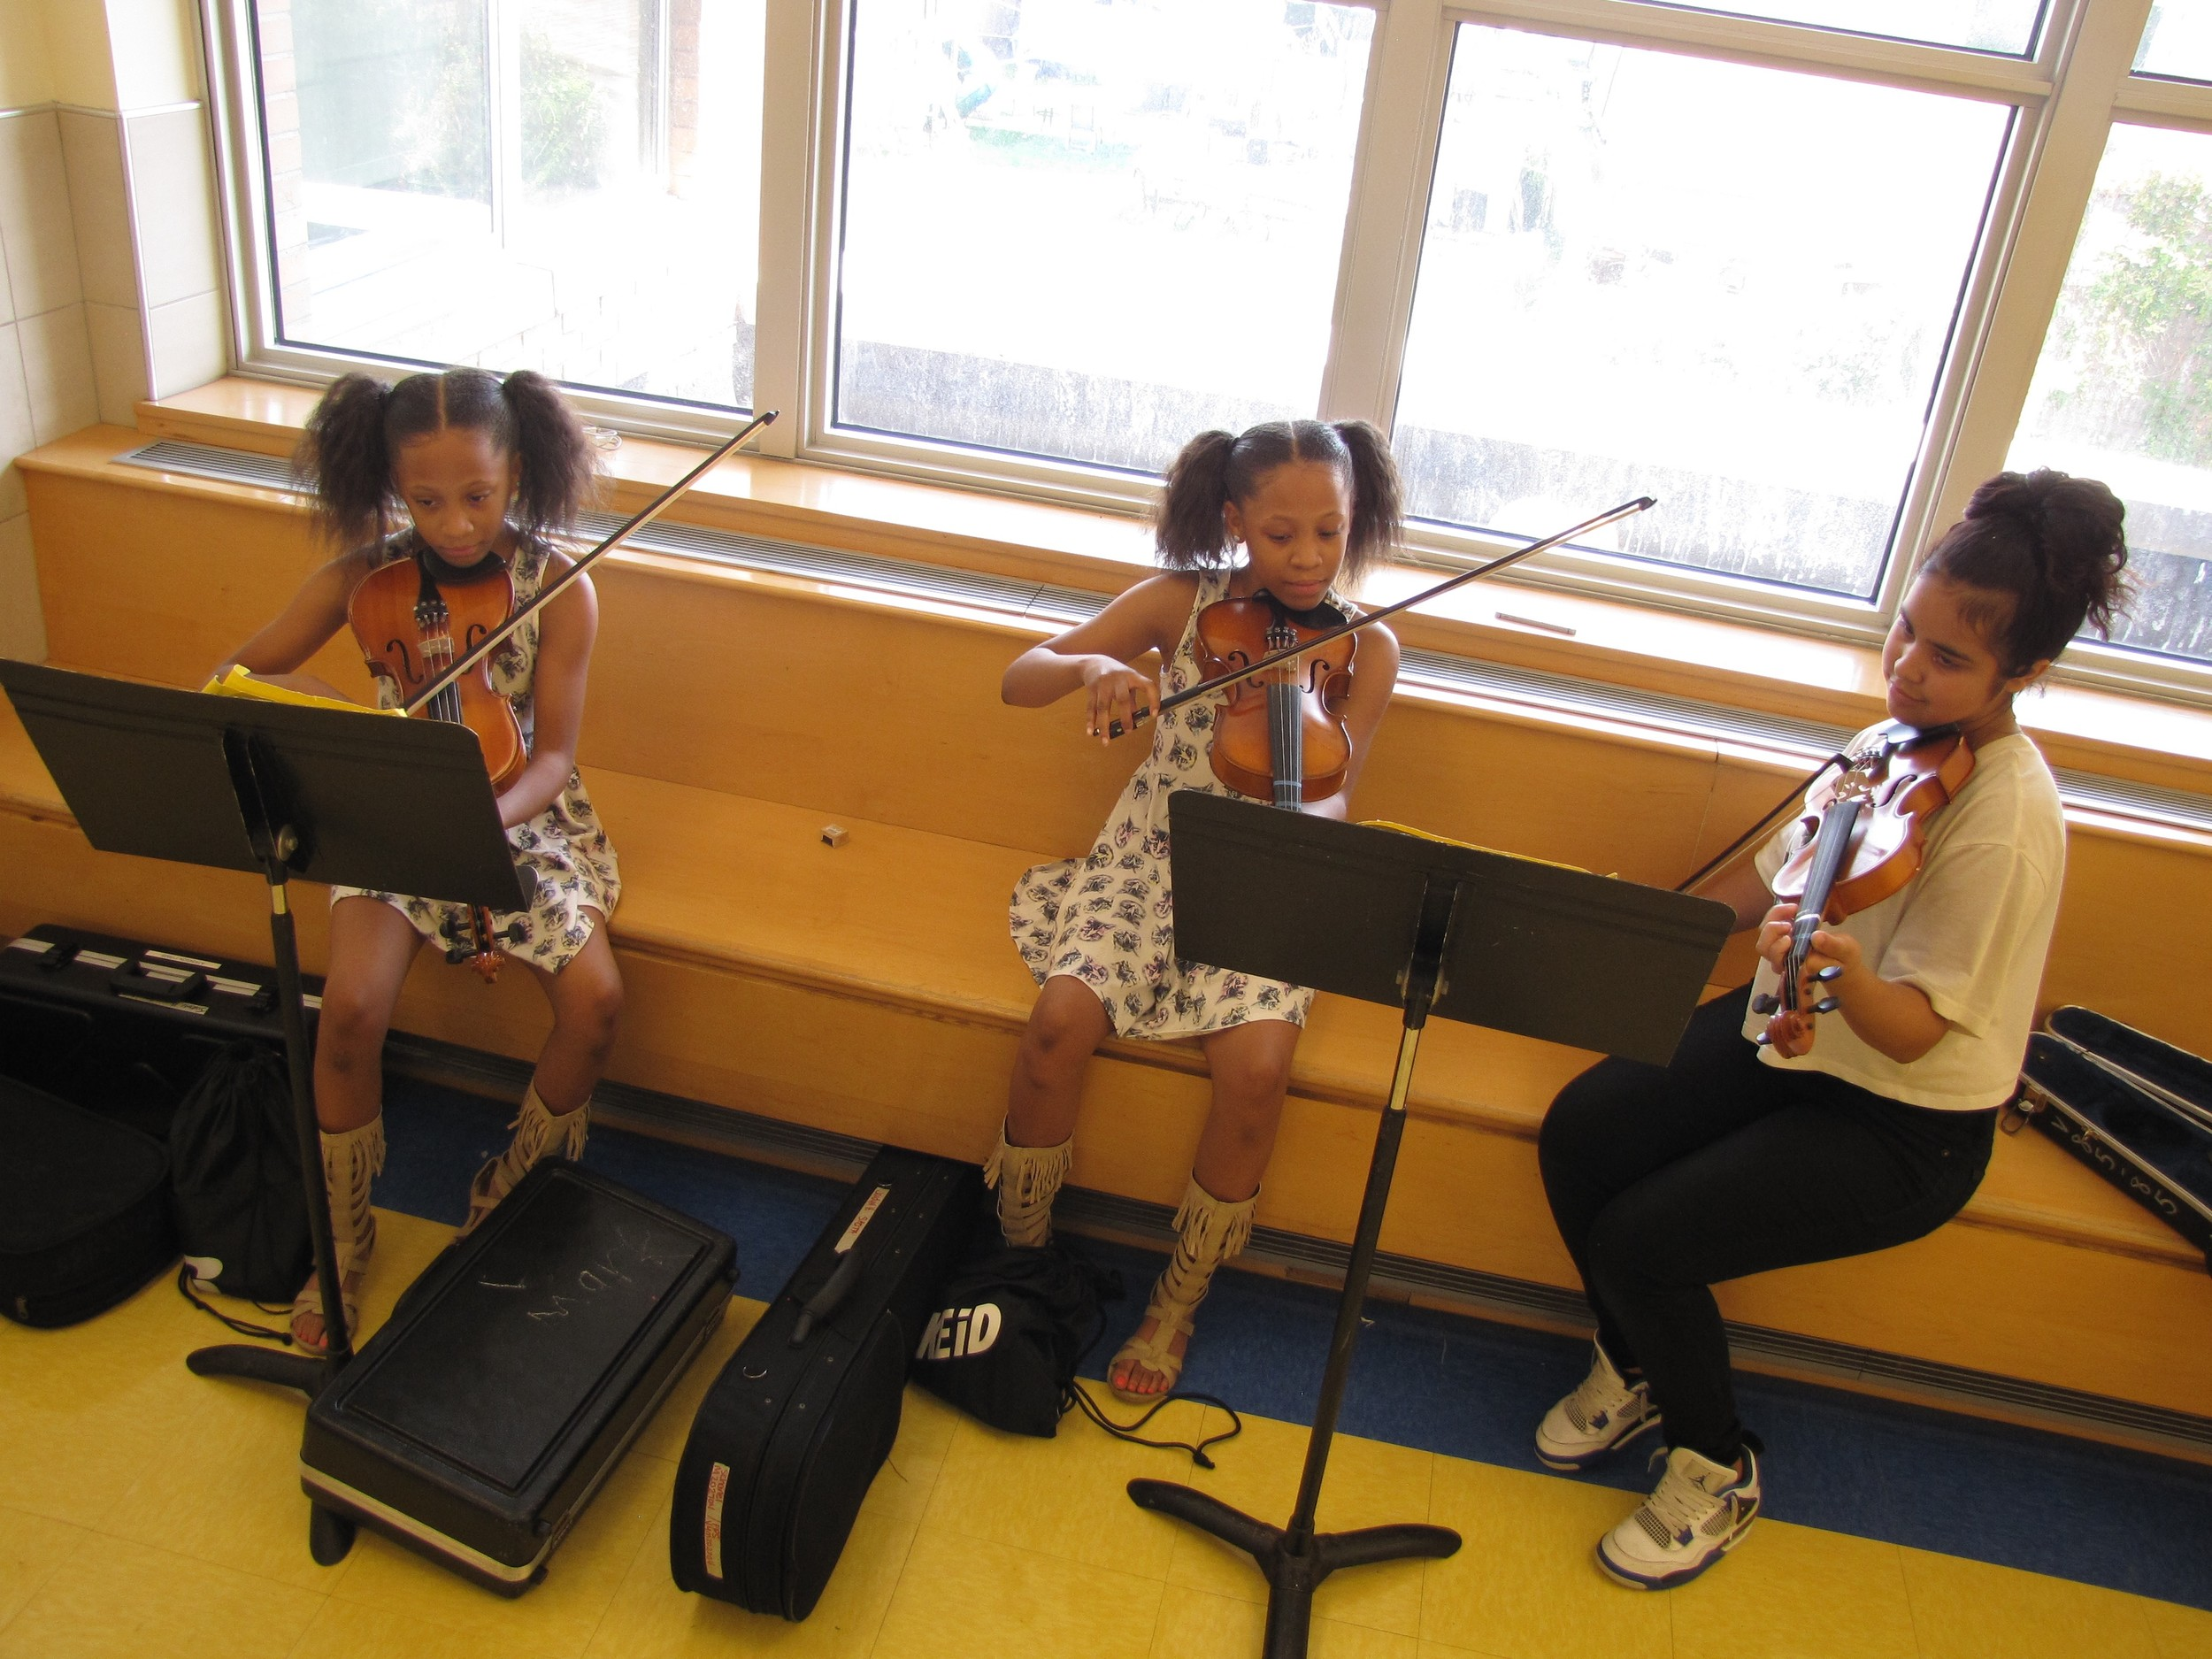 During the Summer Academy of the Arts students were allotted extra one-on-one help to practice their instruments.